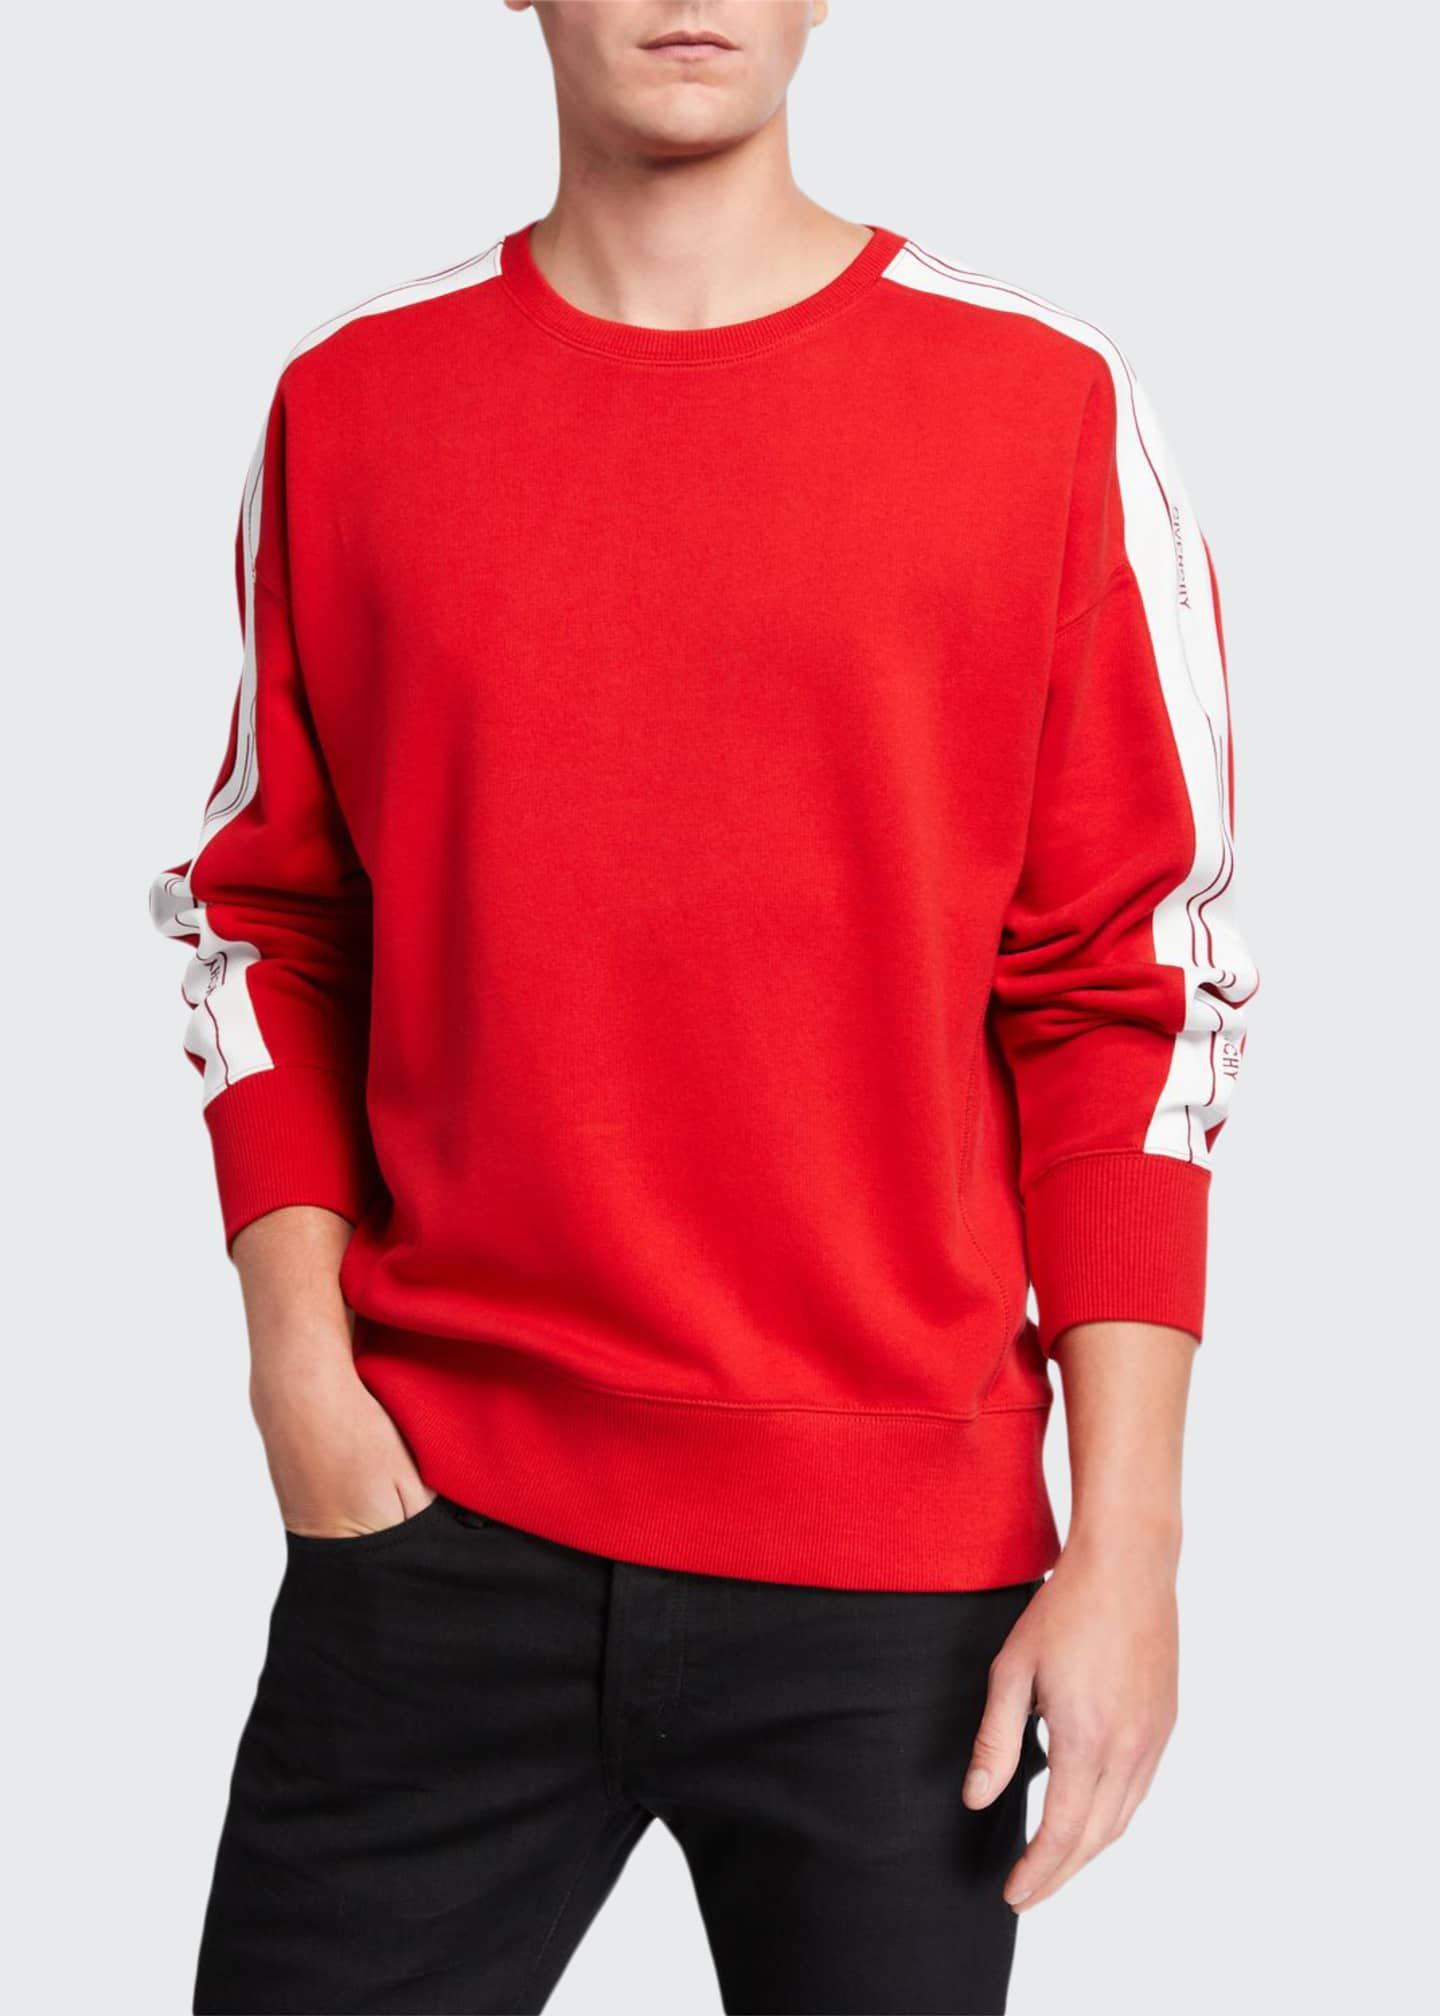 Givenchy Men's Crewneck Sweatshirt with Logo Taping